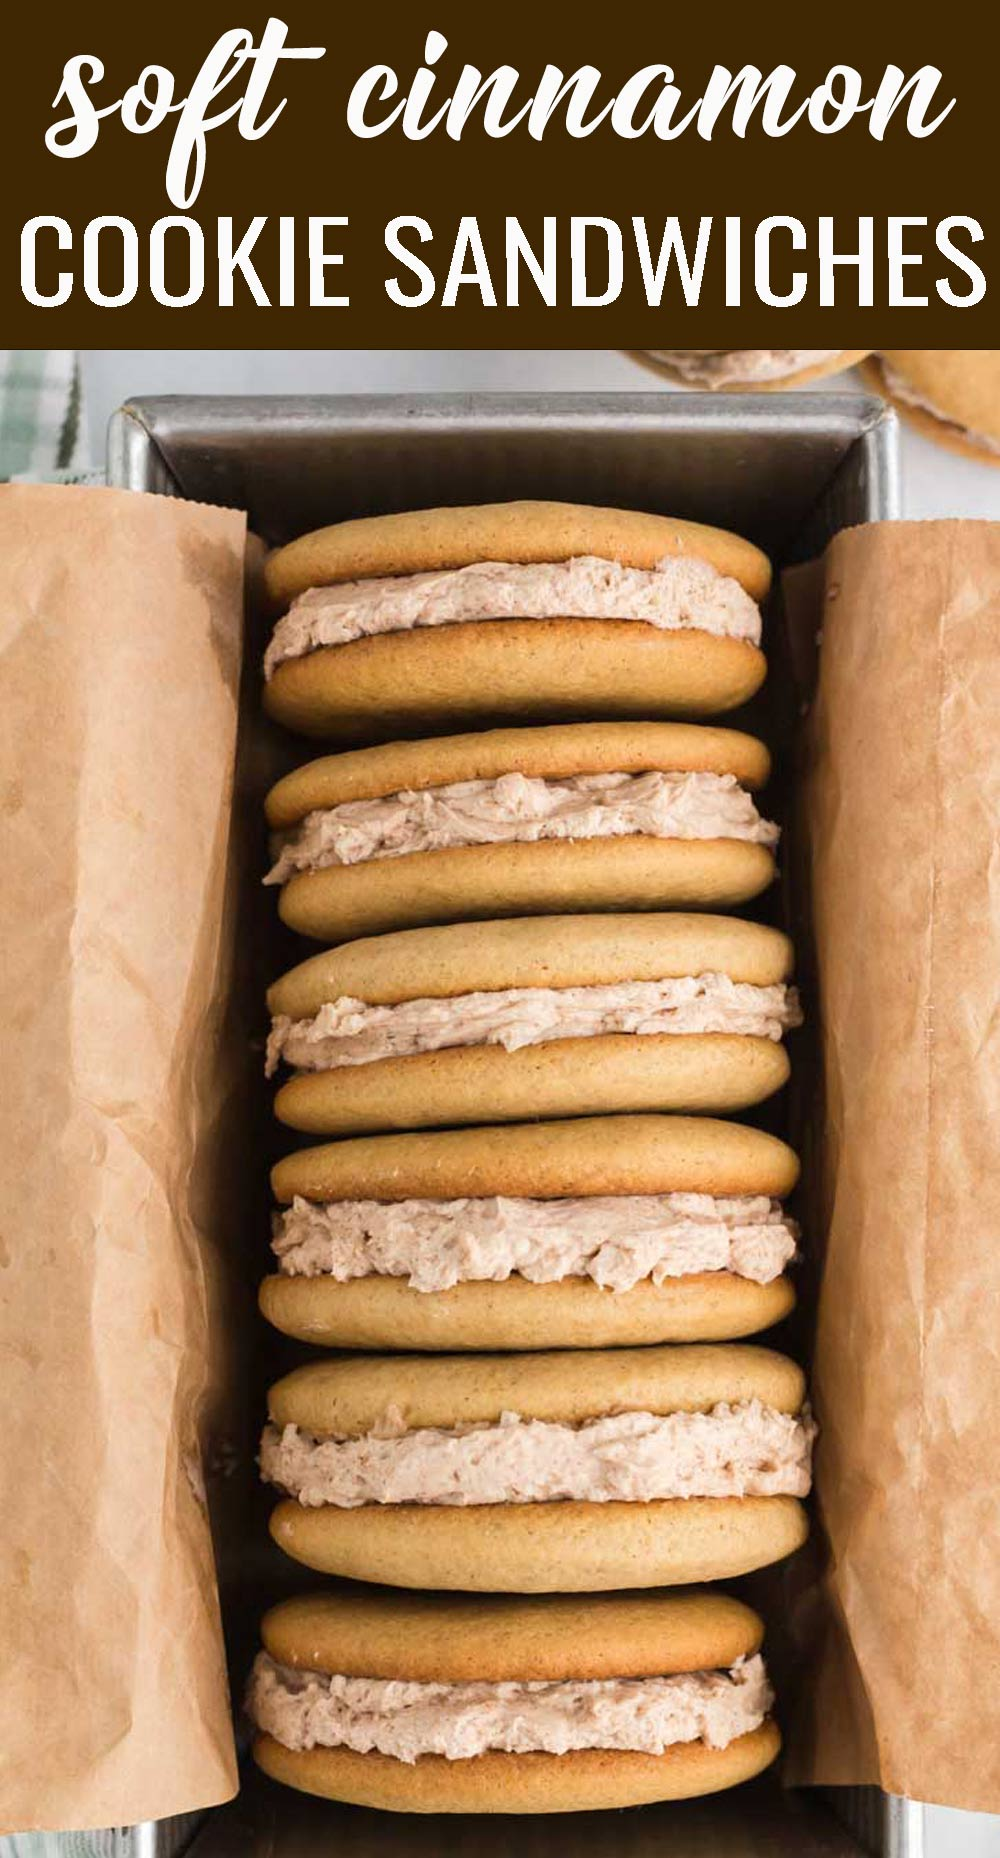 Cinnamon Buttercream Cookie Sandwiches... You'll fall in love with these soft, cinnamon cookies with a melt-in-your-mouth cinnamon buttercream stuffed inside. Make these bite size or make them bigger, but just be sure to make them! via @tastesoflizzyt